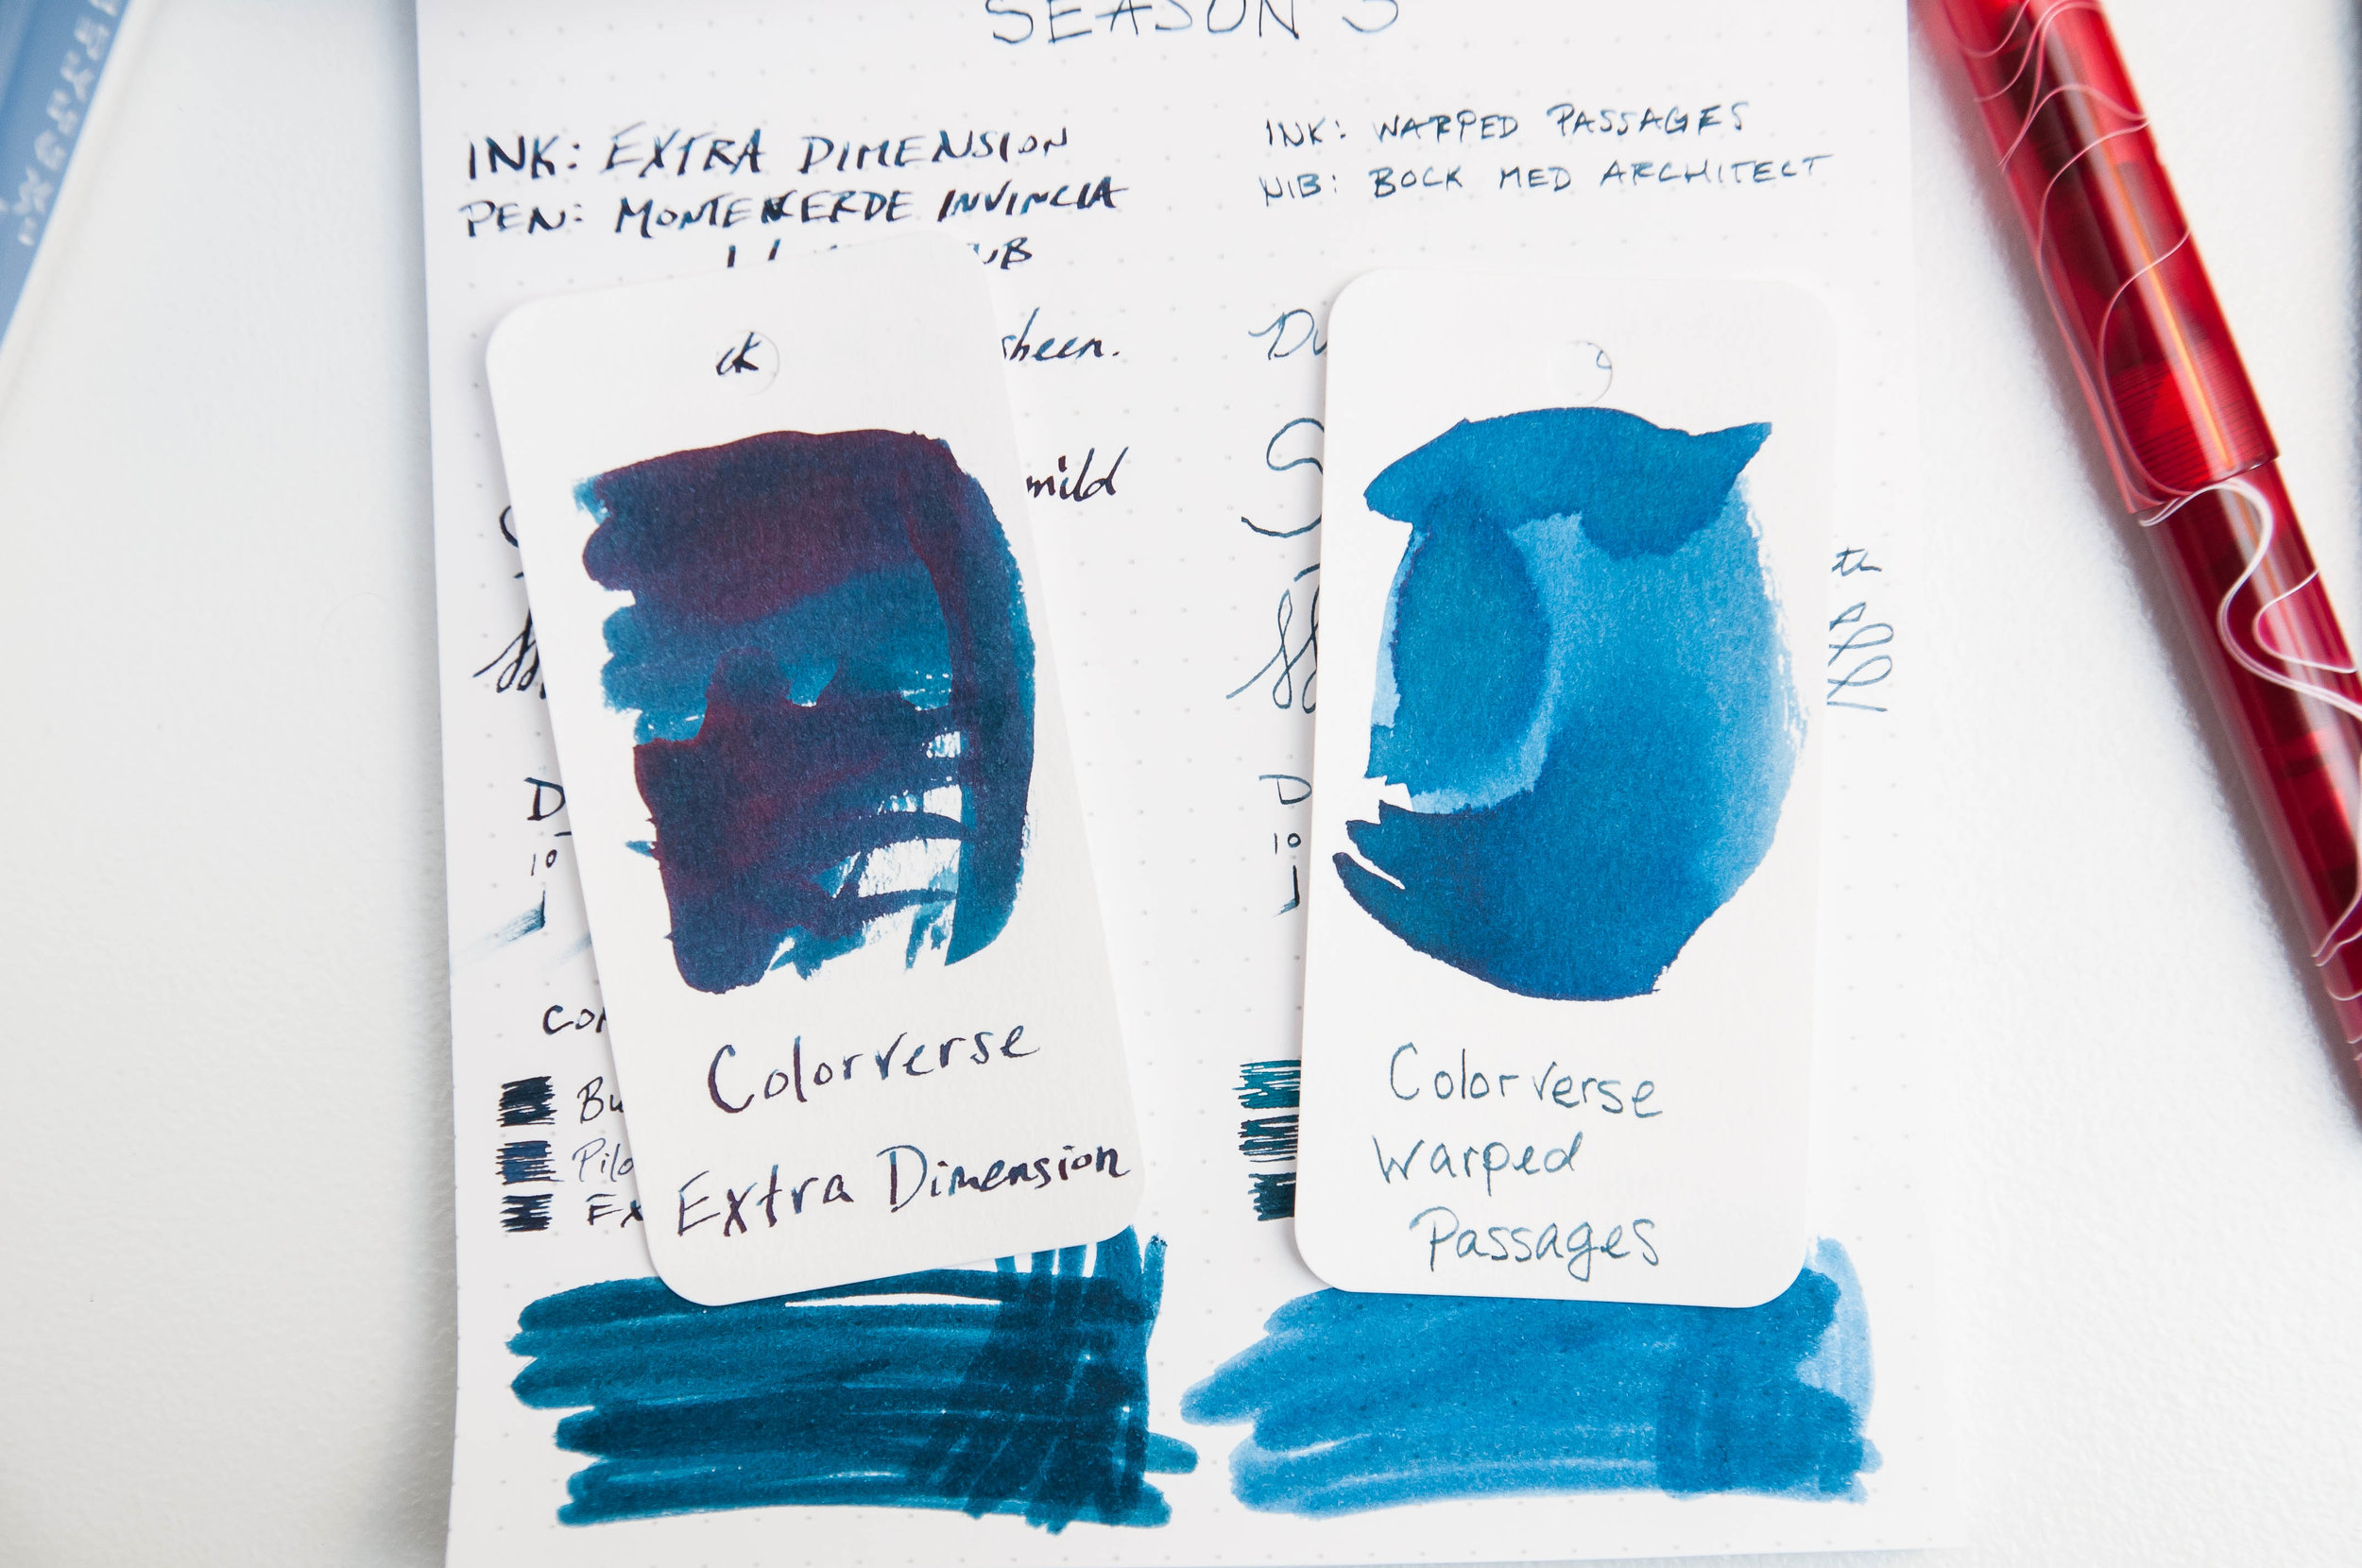 Colorverse Extra Dimension & Warped Passages Ink Review